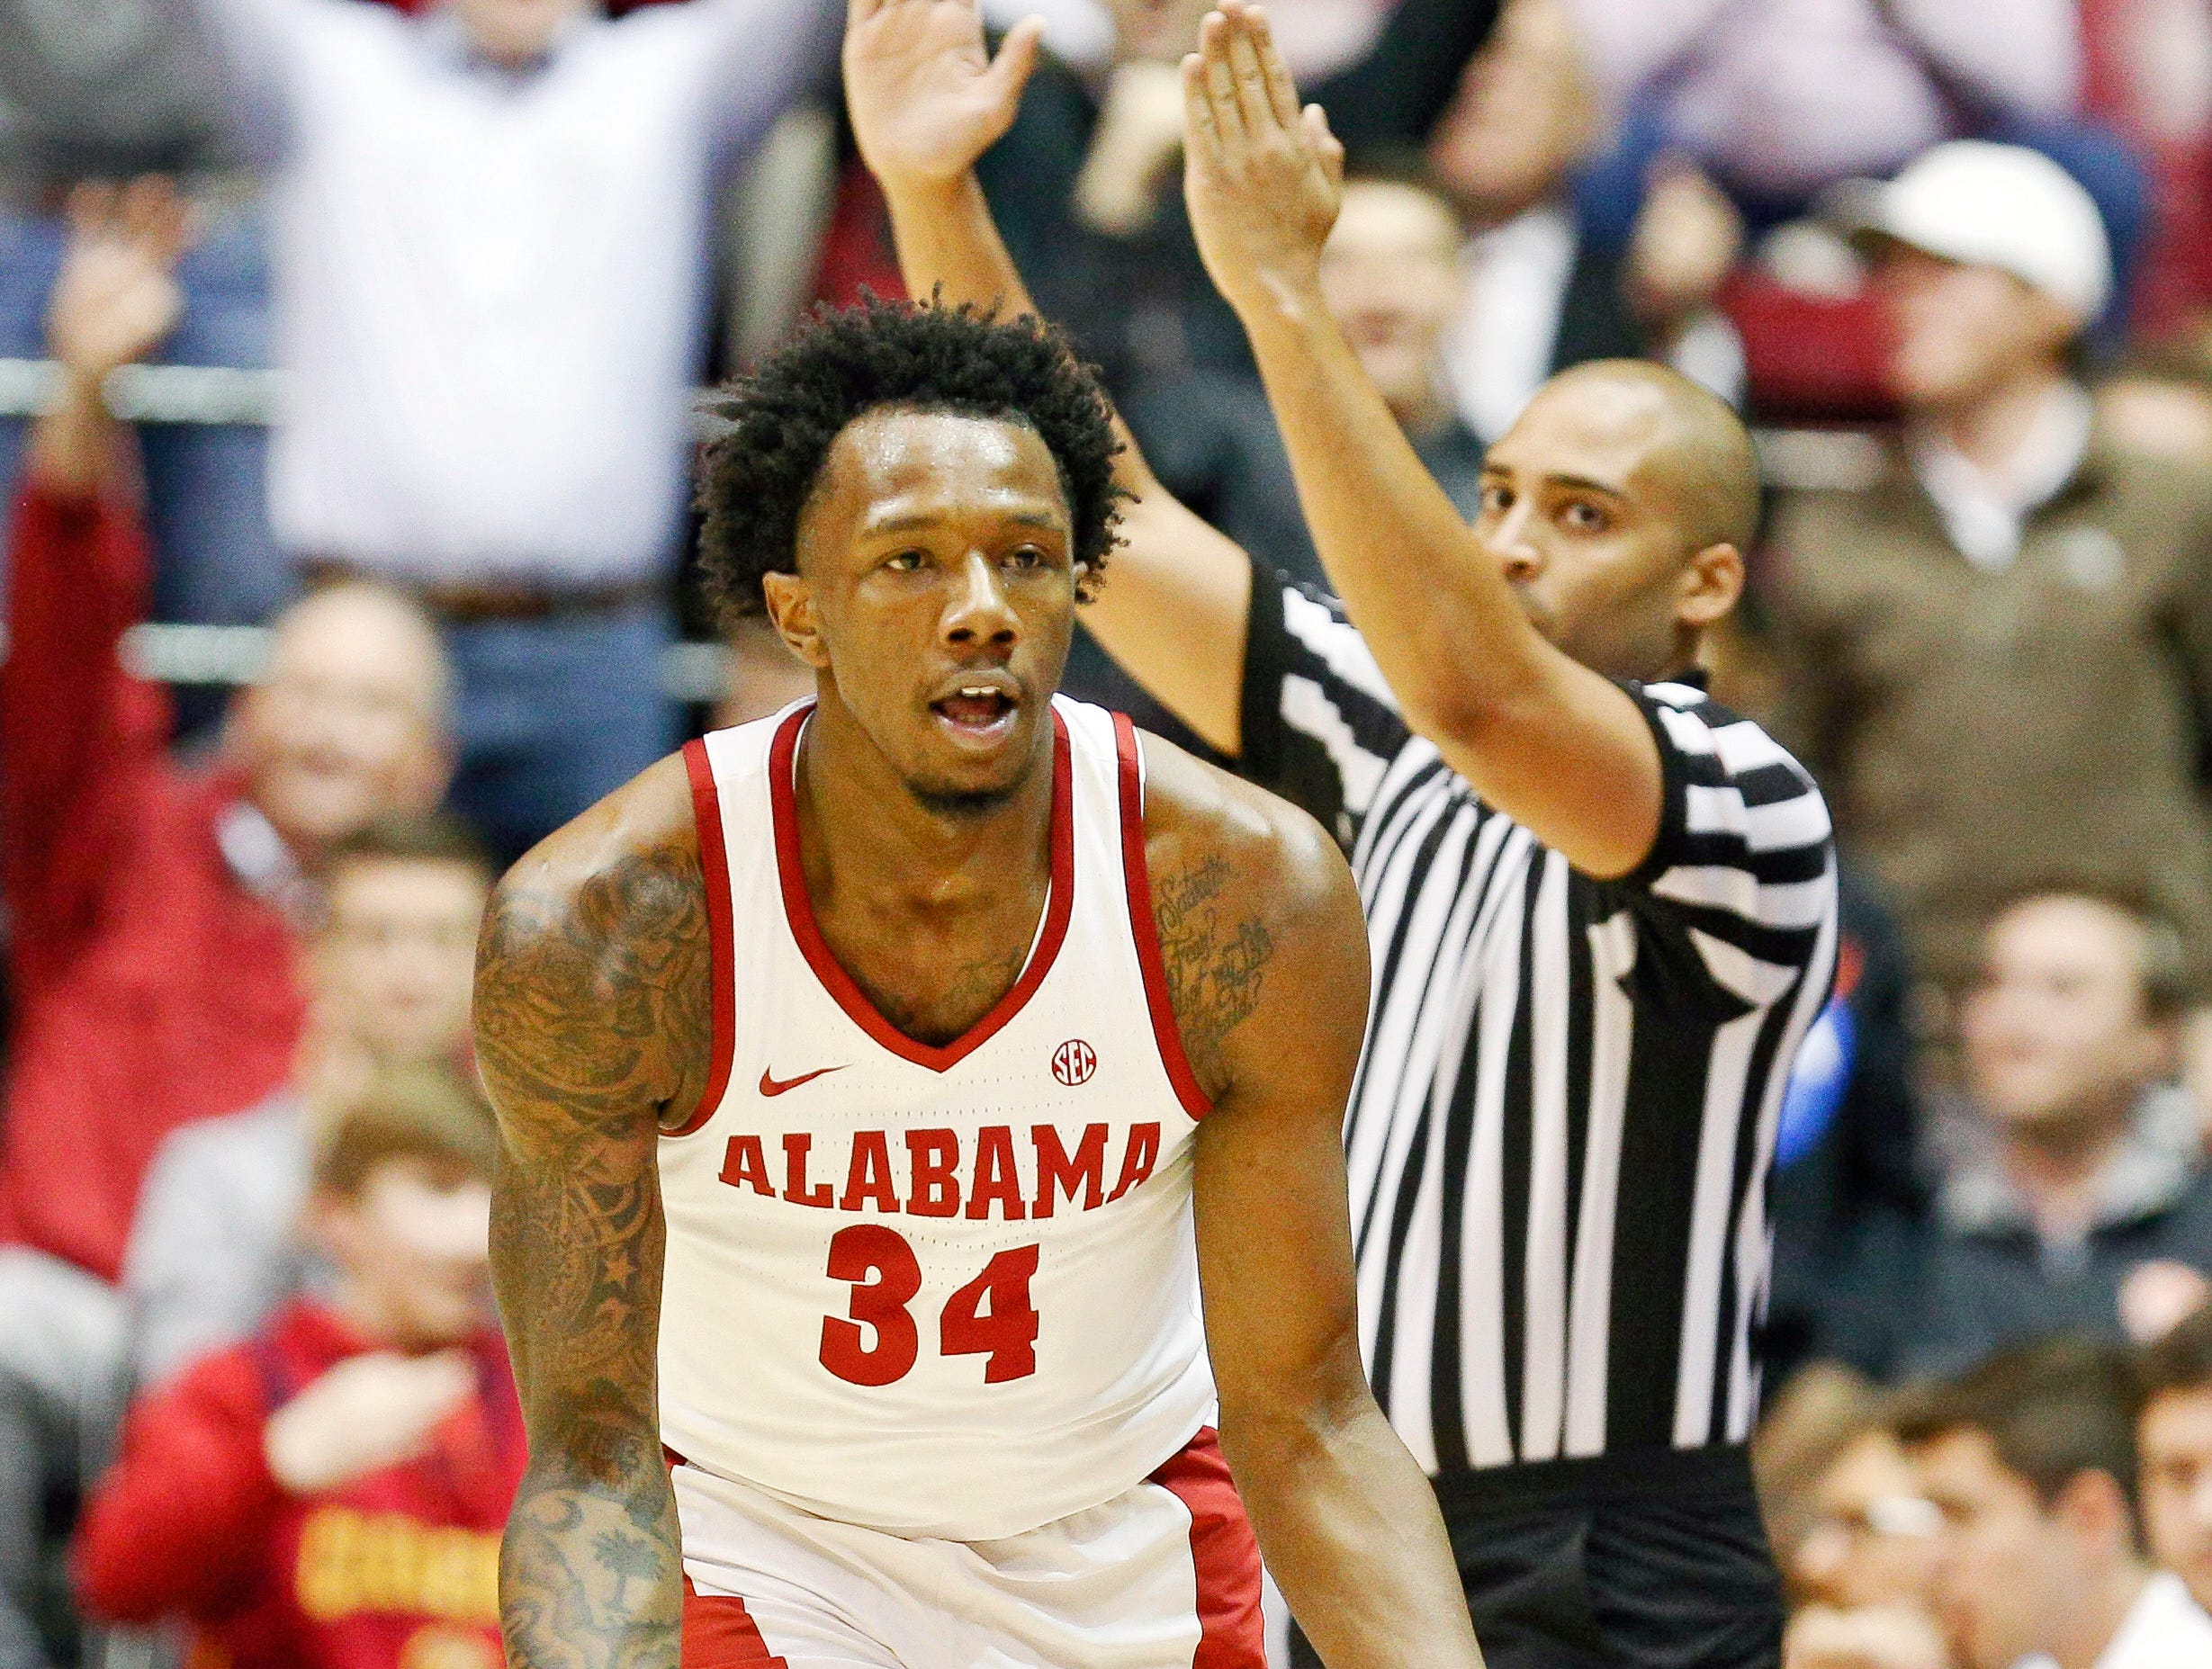 Mar 5, 2019; Tuscaloosa, AL, USA; Alabama Crimson Tide guard Tevin Mack (34) reacts after hitting a 3 pointer during the first half against Auburn Tigers at Coleman Coliseum. Mandatory Credit: Marvin Gentry-USA TODAY Sports